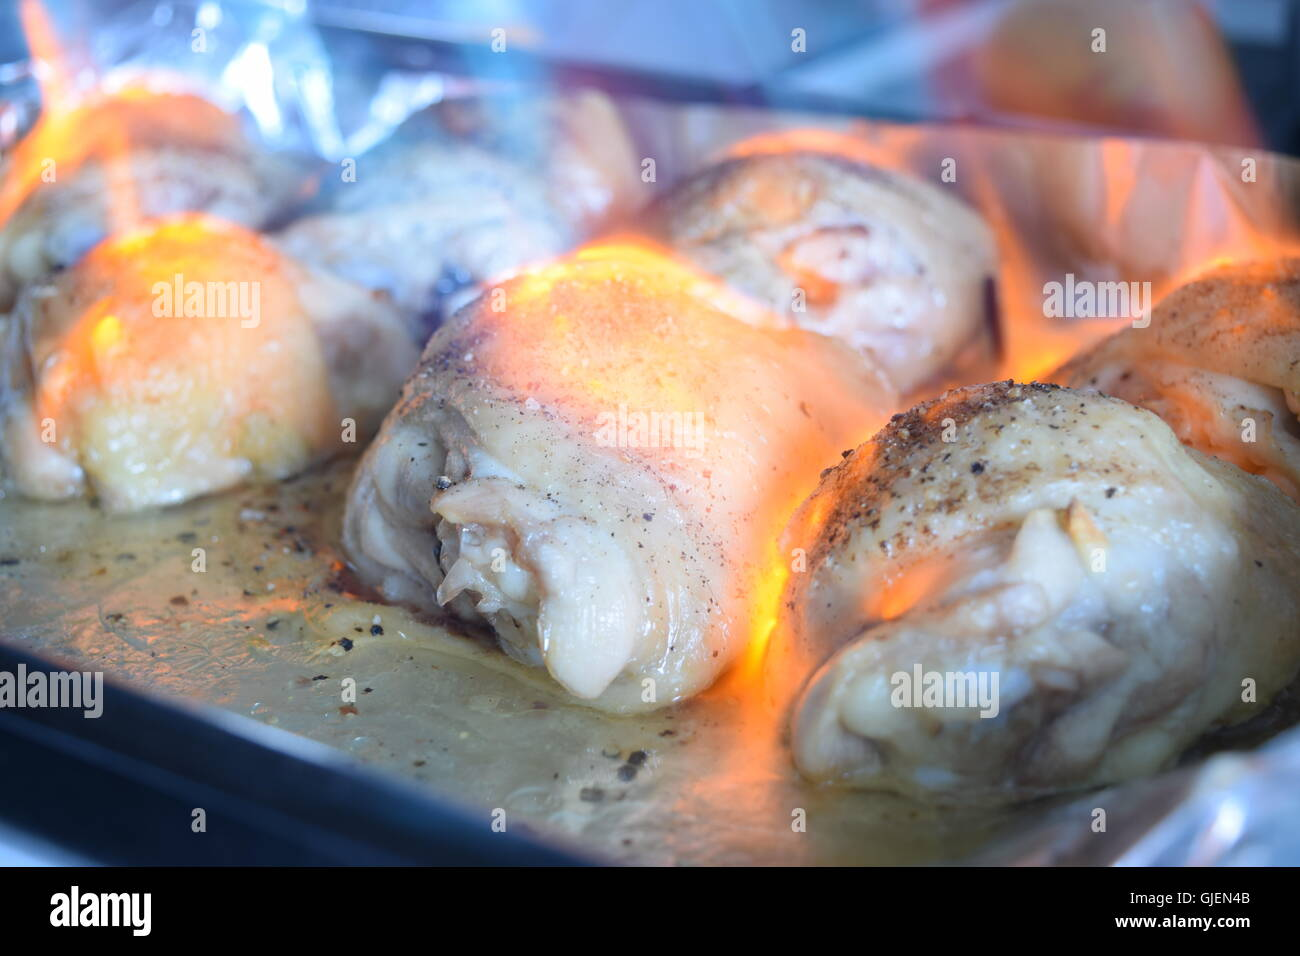 Raw Pieces of Chicken in Preparation - Stock Image